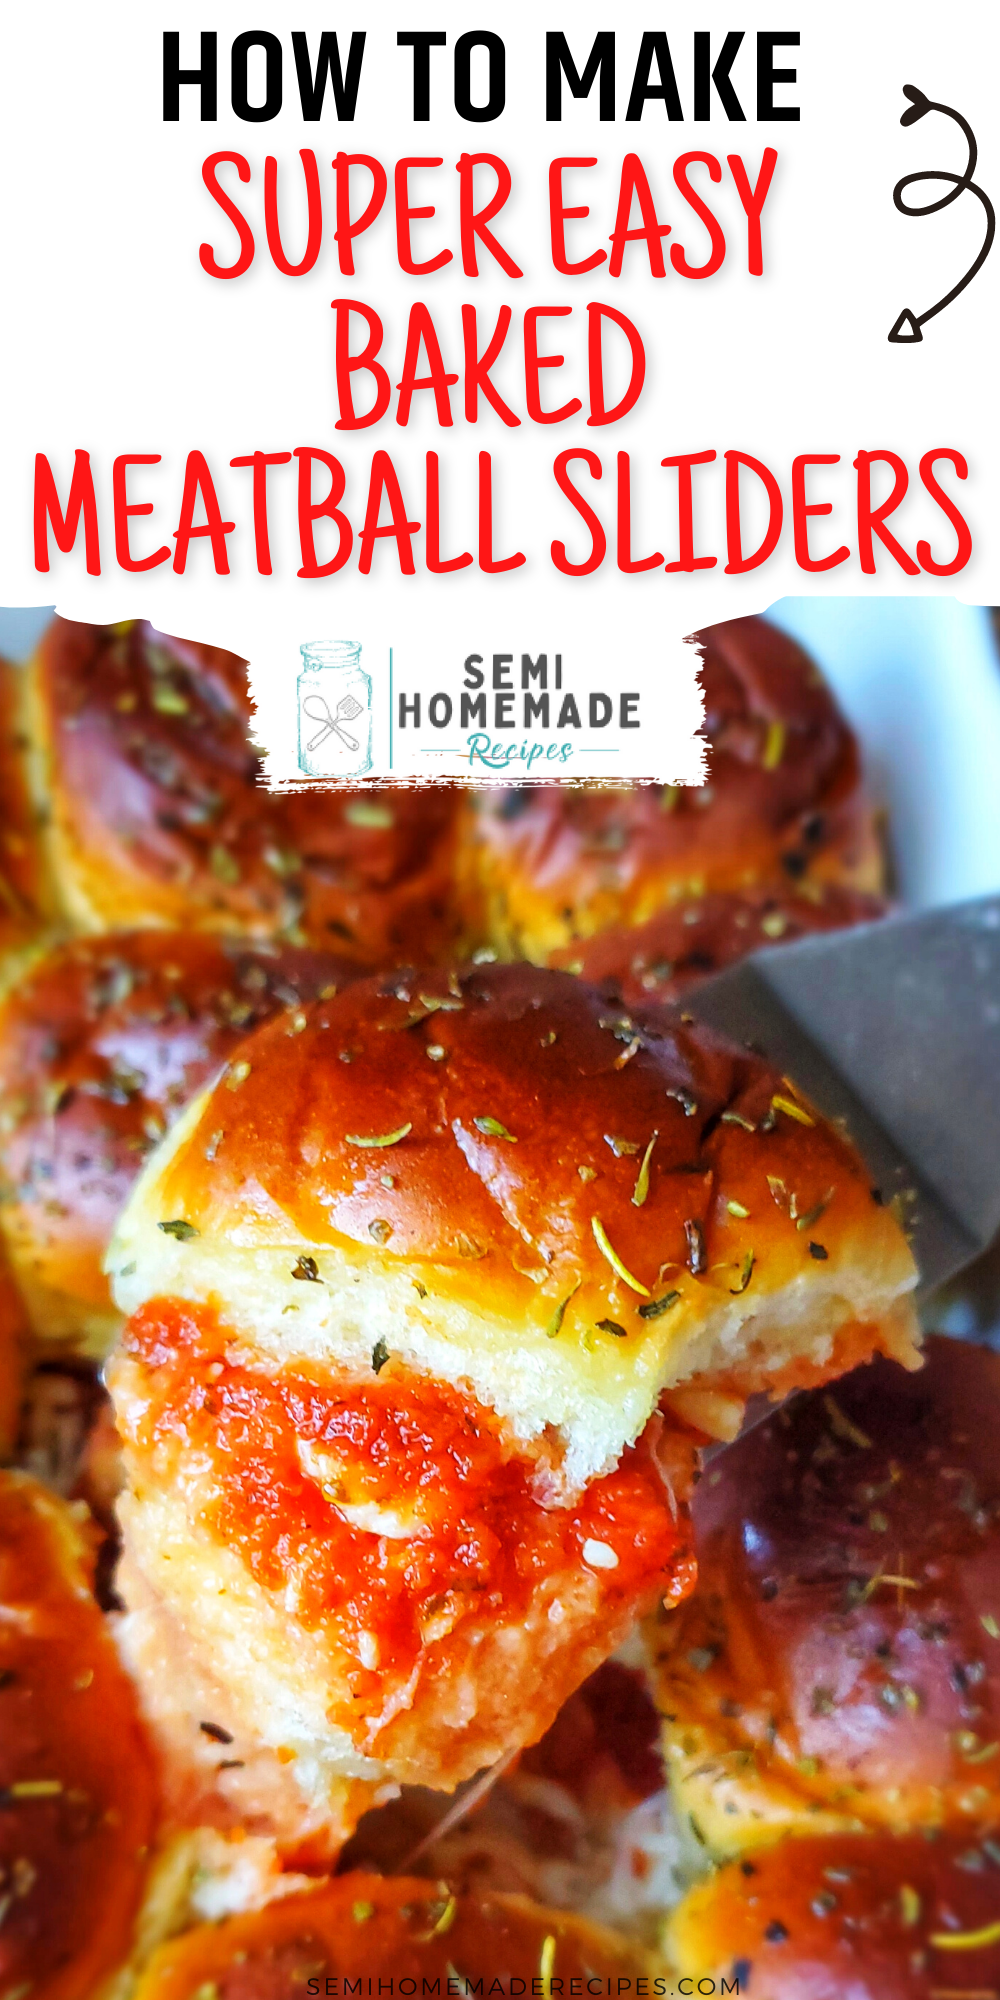 These Super Easy Baked Meatball Sliders are made with store bought meatballs, sauce, cheese and tasty Hawaiian rolls! Great for an easy lunch or easy dinner! These would be perfect for a weeknight dinner or a fast weekend lunch! Also great for game day and parties!